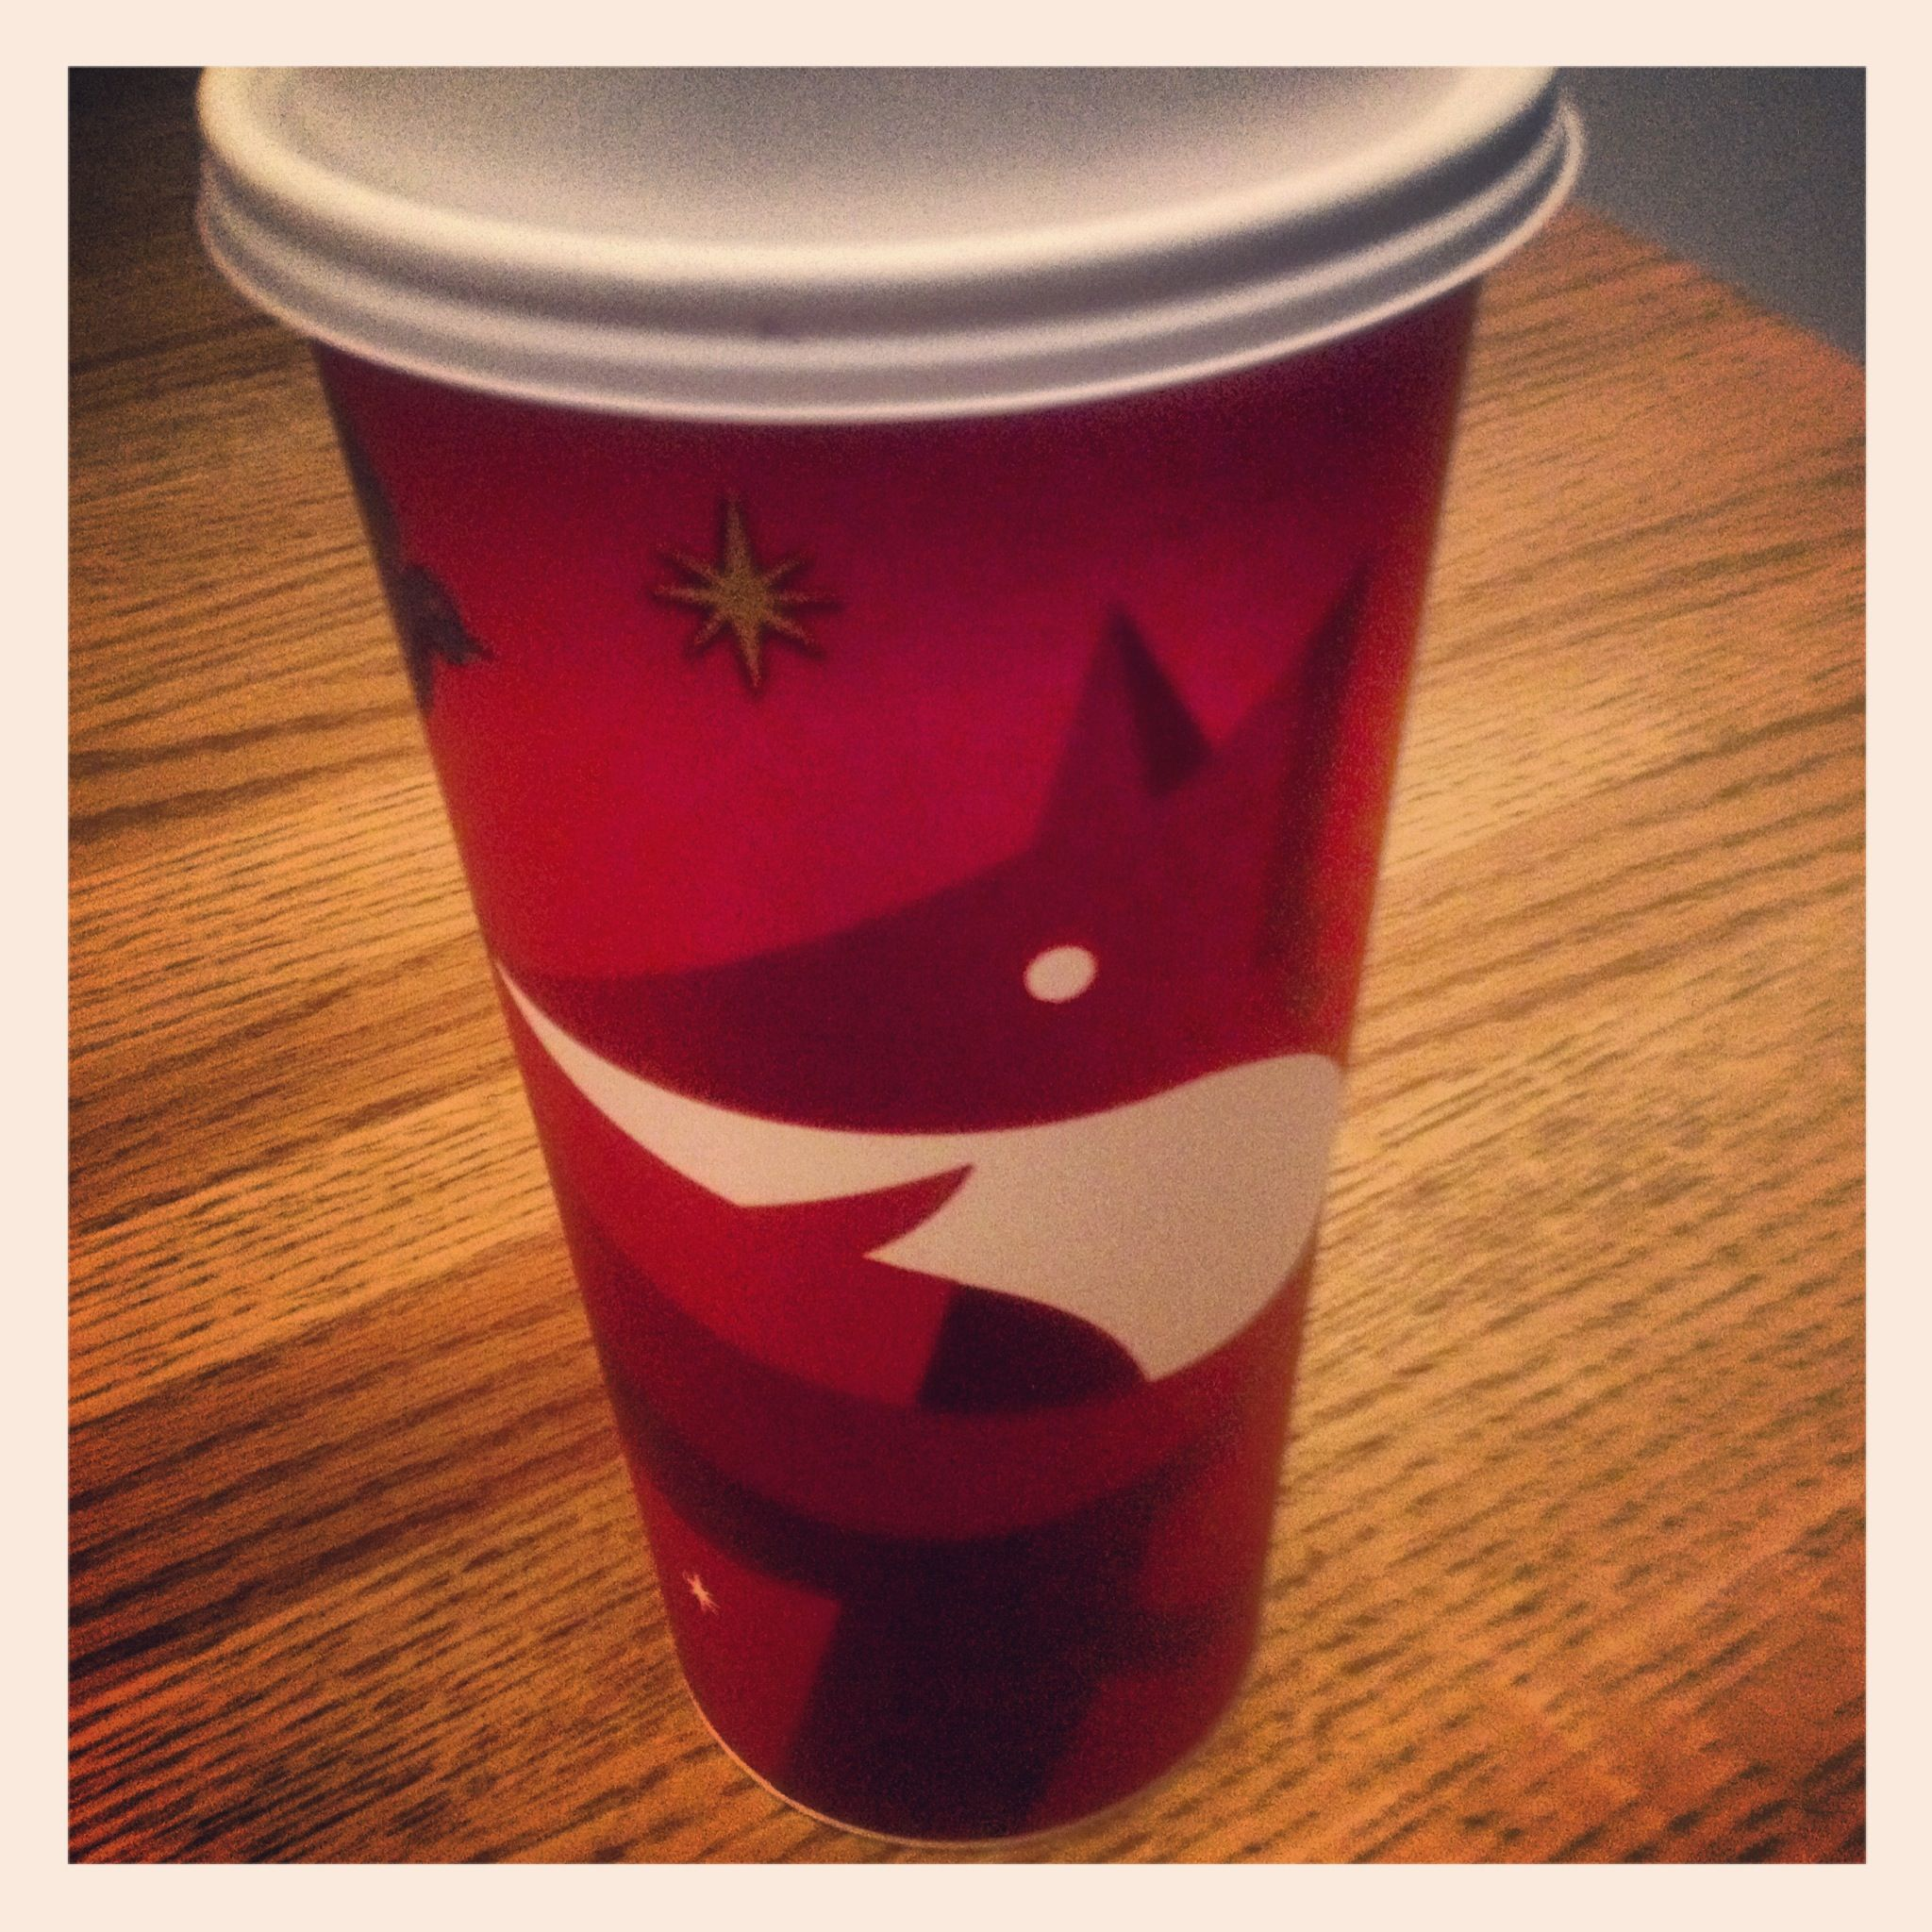 2012 Starbucks Holiday Cup - 11/7/2012